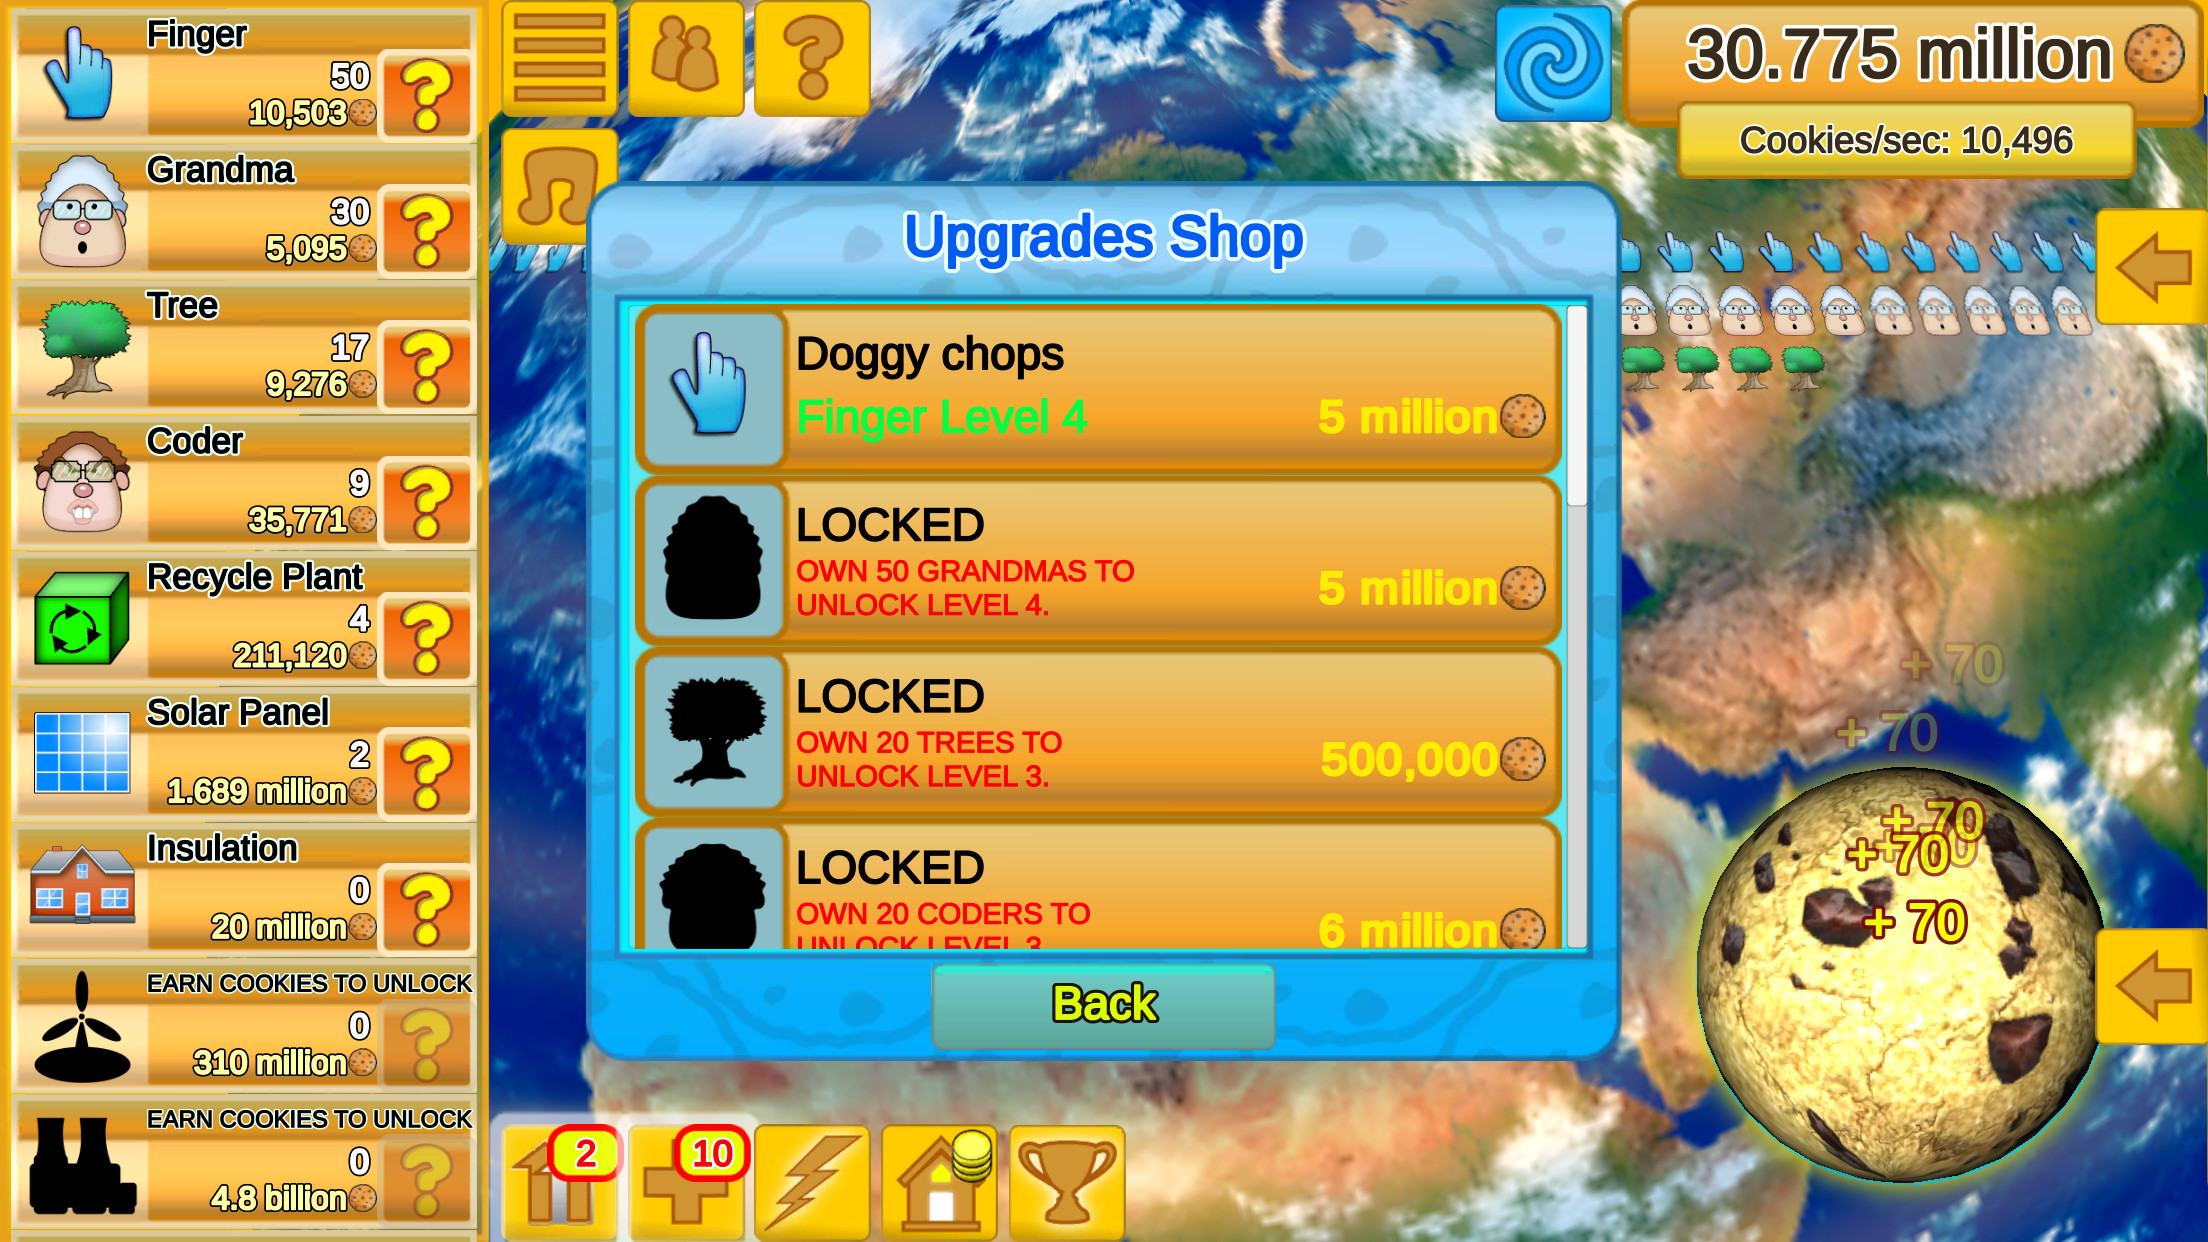 Cookie Clicker Save the World free game for iOS, Android and